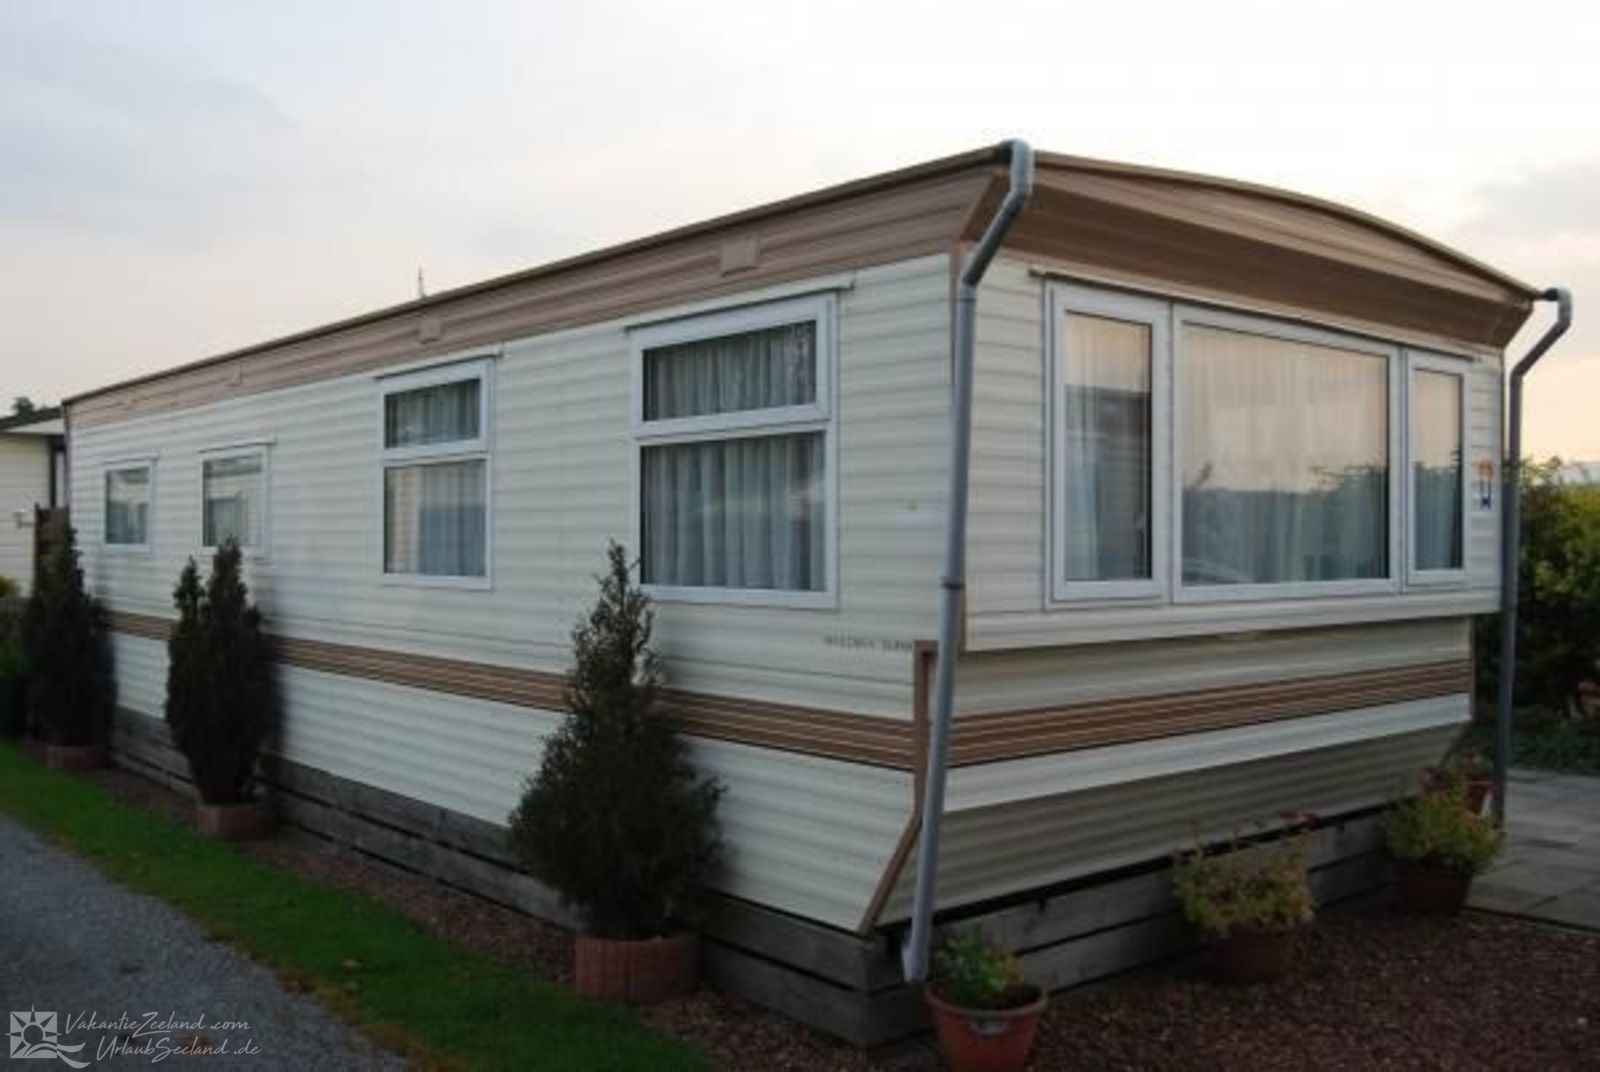 VZ489 Mobile home in Serooskerke